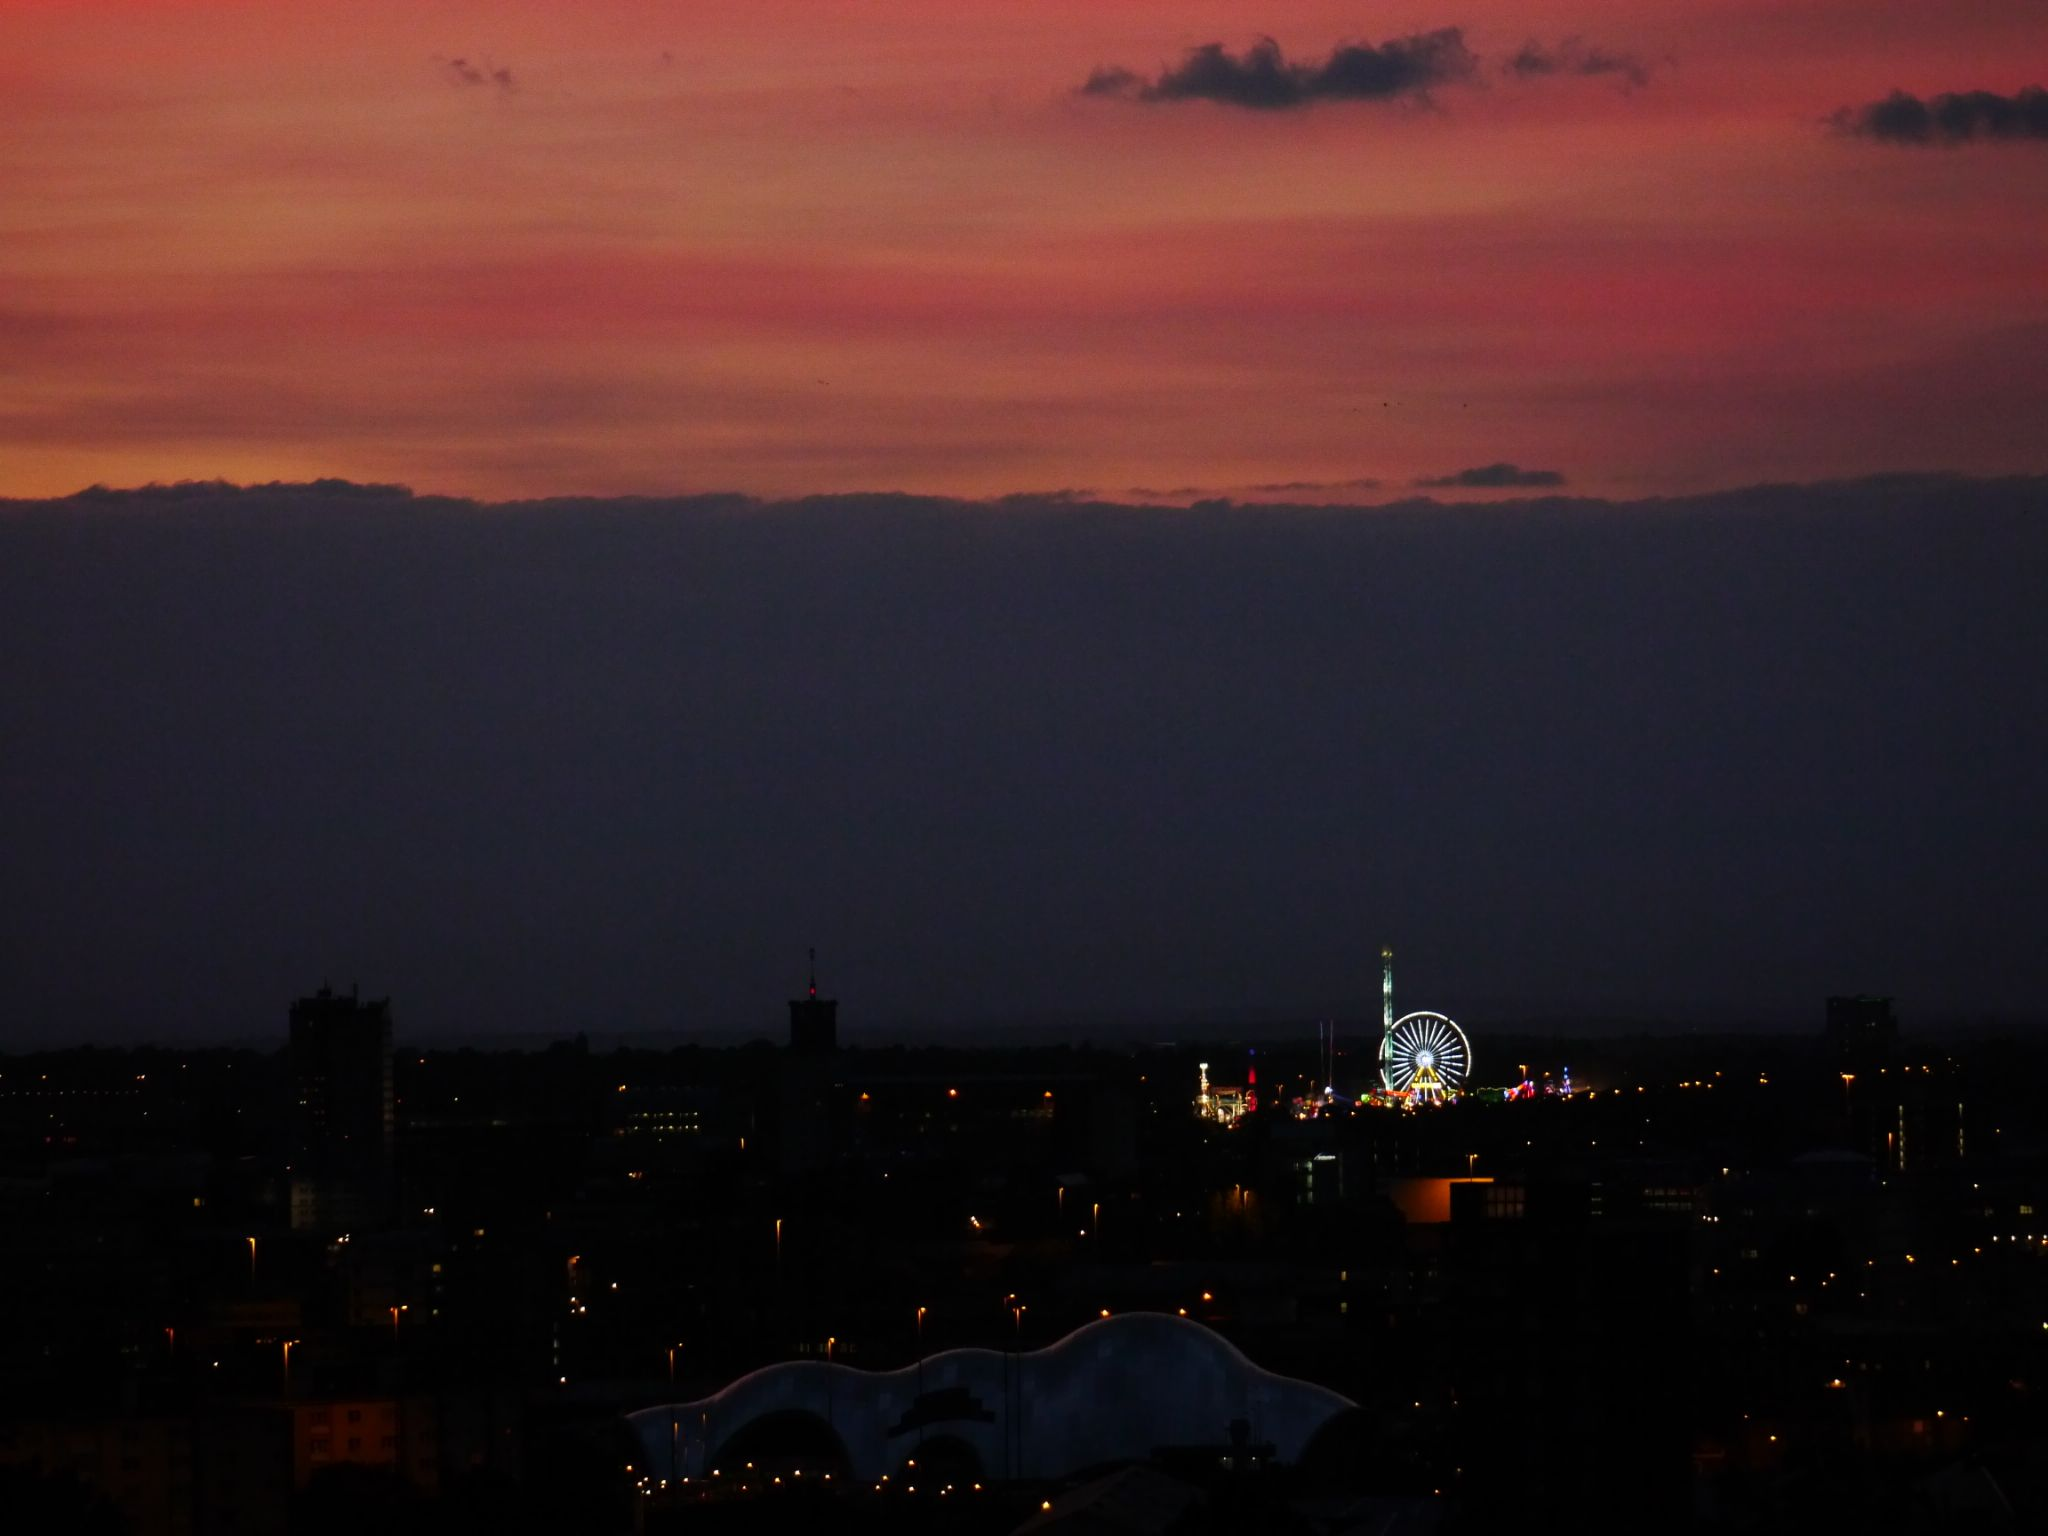 Sunset and the Hoppings funfair by Darren Turner